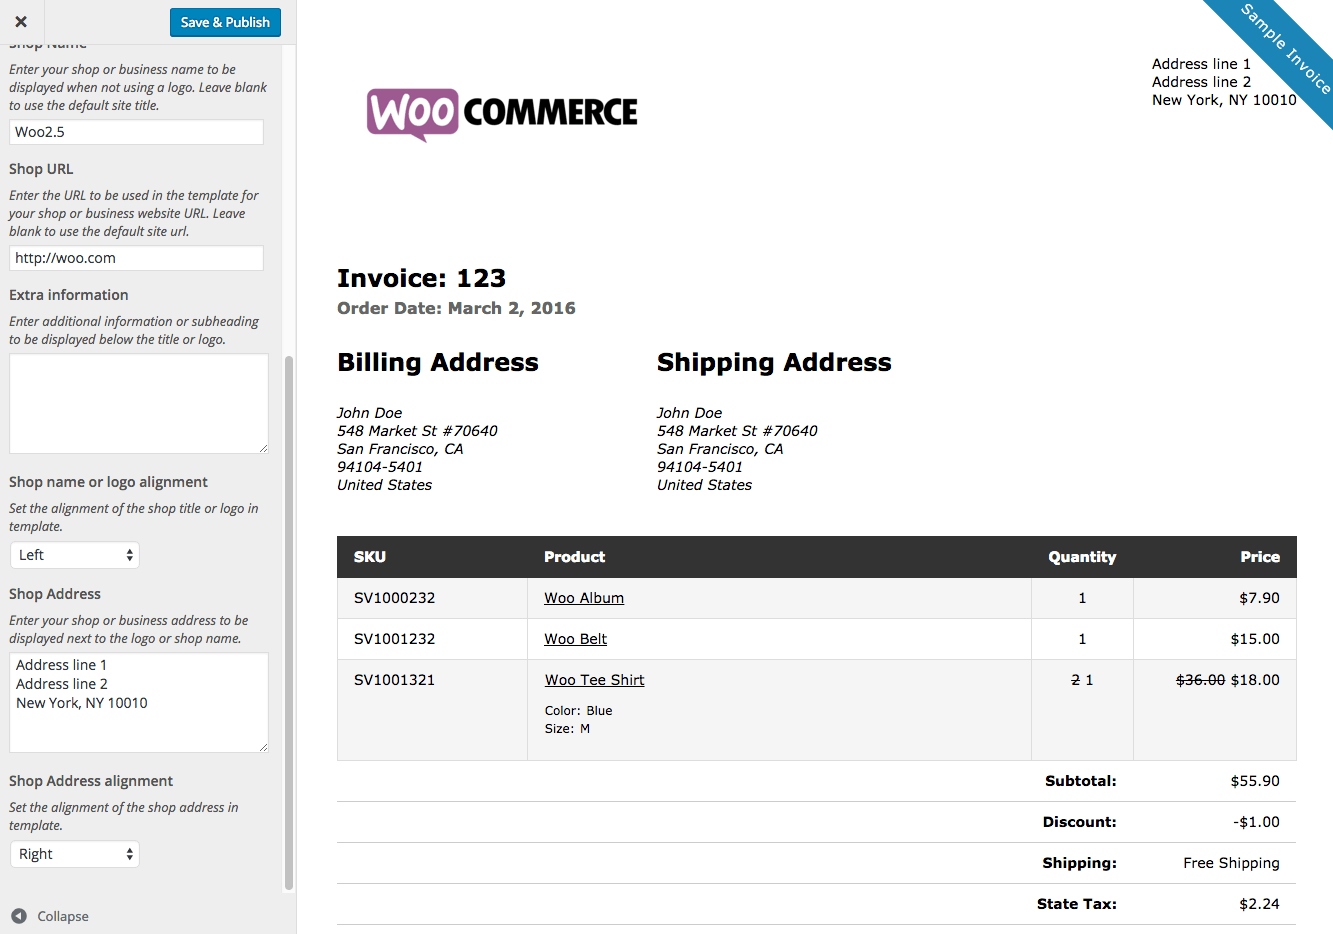 Ultrablogus  Surprising Woocommerce Print Invoices Amp Packing Lists  Woocommerce Docs With Fascinating Woocommerce Print Invoices  Packing Lists Customizer With Agreeable How To Organize Receipts For Taxes Also Pictures Of Receipts In Addition Ticket Receipt And Quickbooks Item Receipt As Well As Receipt Return Policy Additionally S P Depository Receipts From Docswoocommercecom With Ultrablogus  Fascinating Woocommerce Print Invoices Amp Packing Lists  Woocommerce Docs With Agreeable Woocommerce Print Invoices  Packing Lists Customizer And Surprising How To Organize Receipts For Taxes Also Pictures Of Receipts In Addition Ticket Receipt From Docswoocommercecom